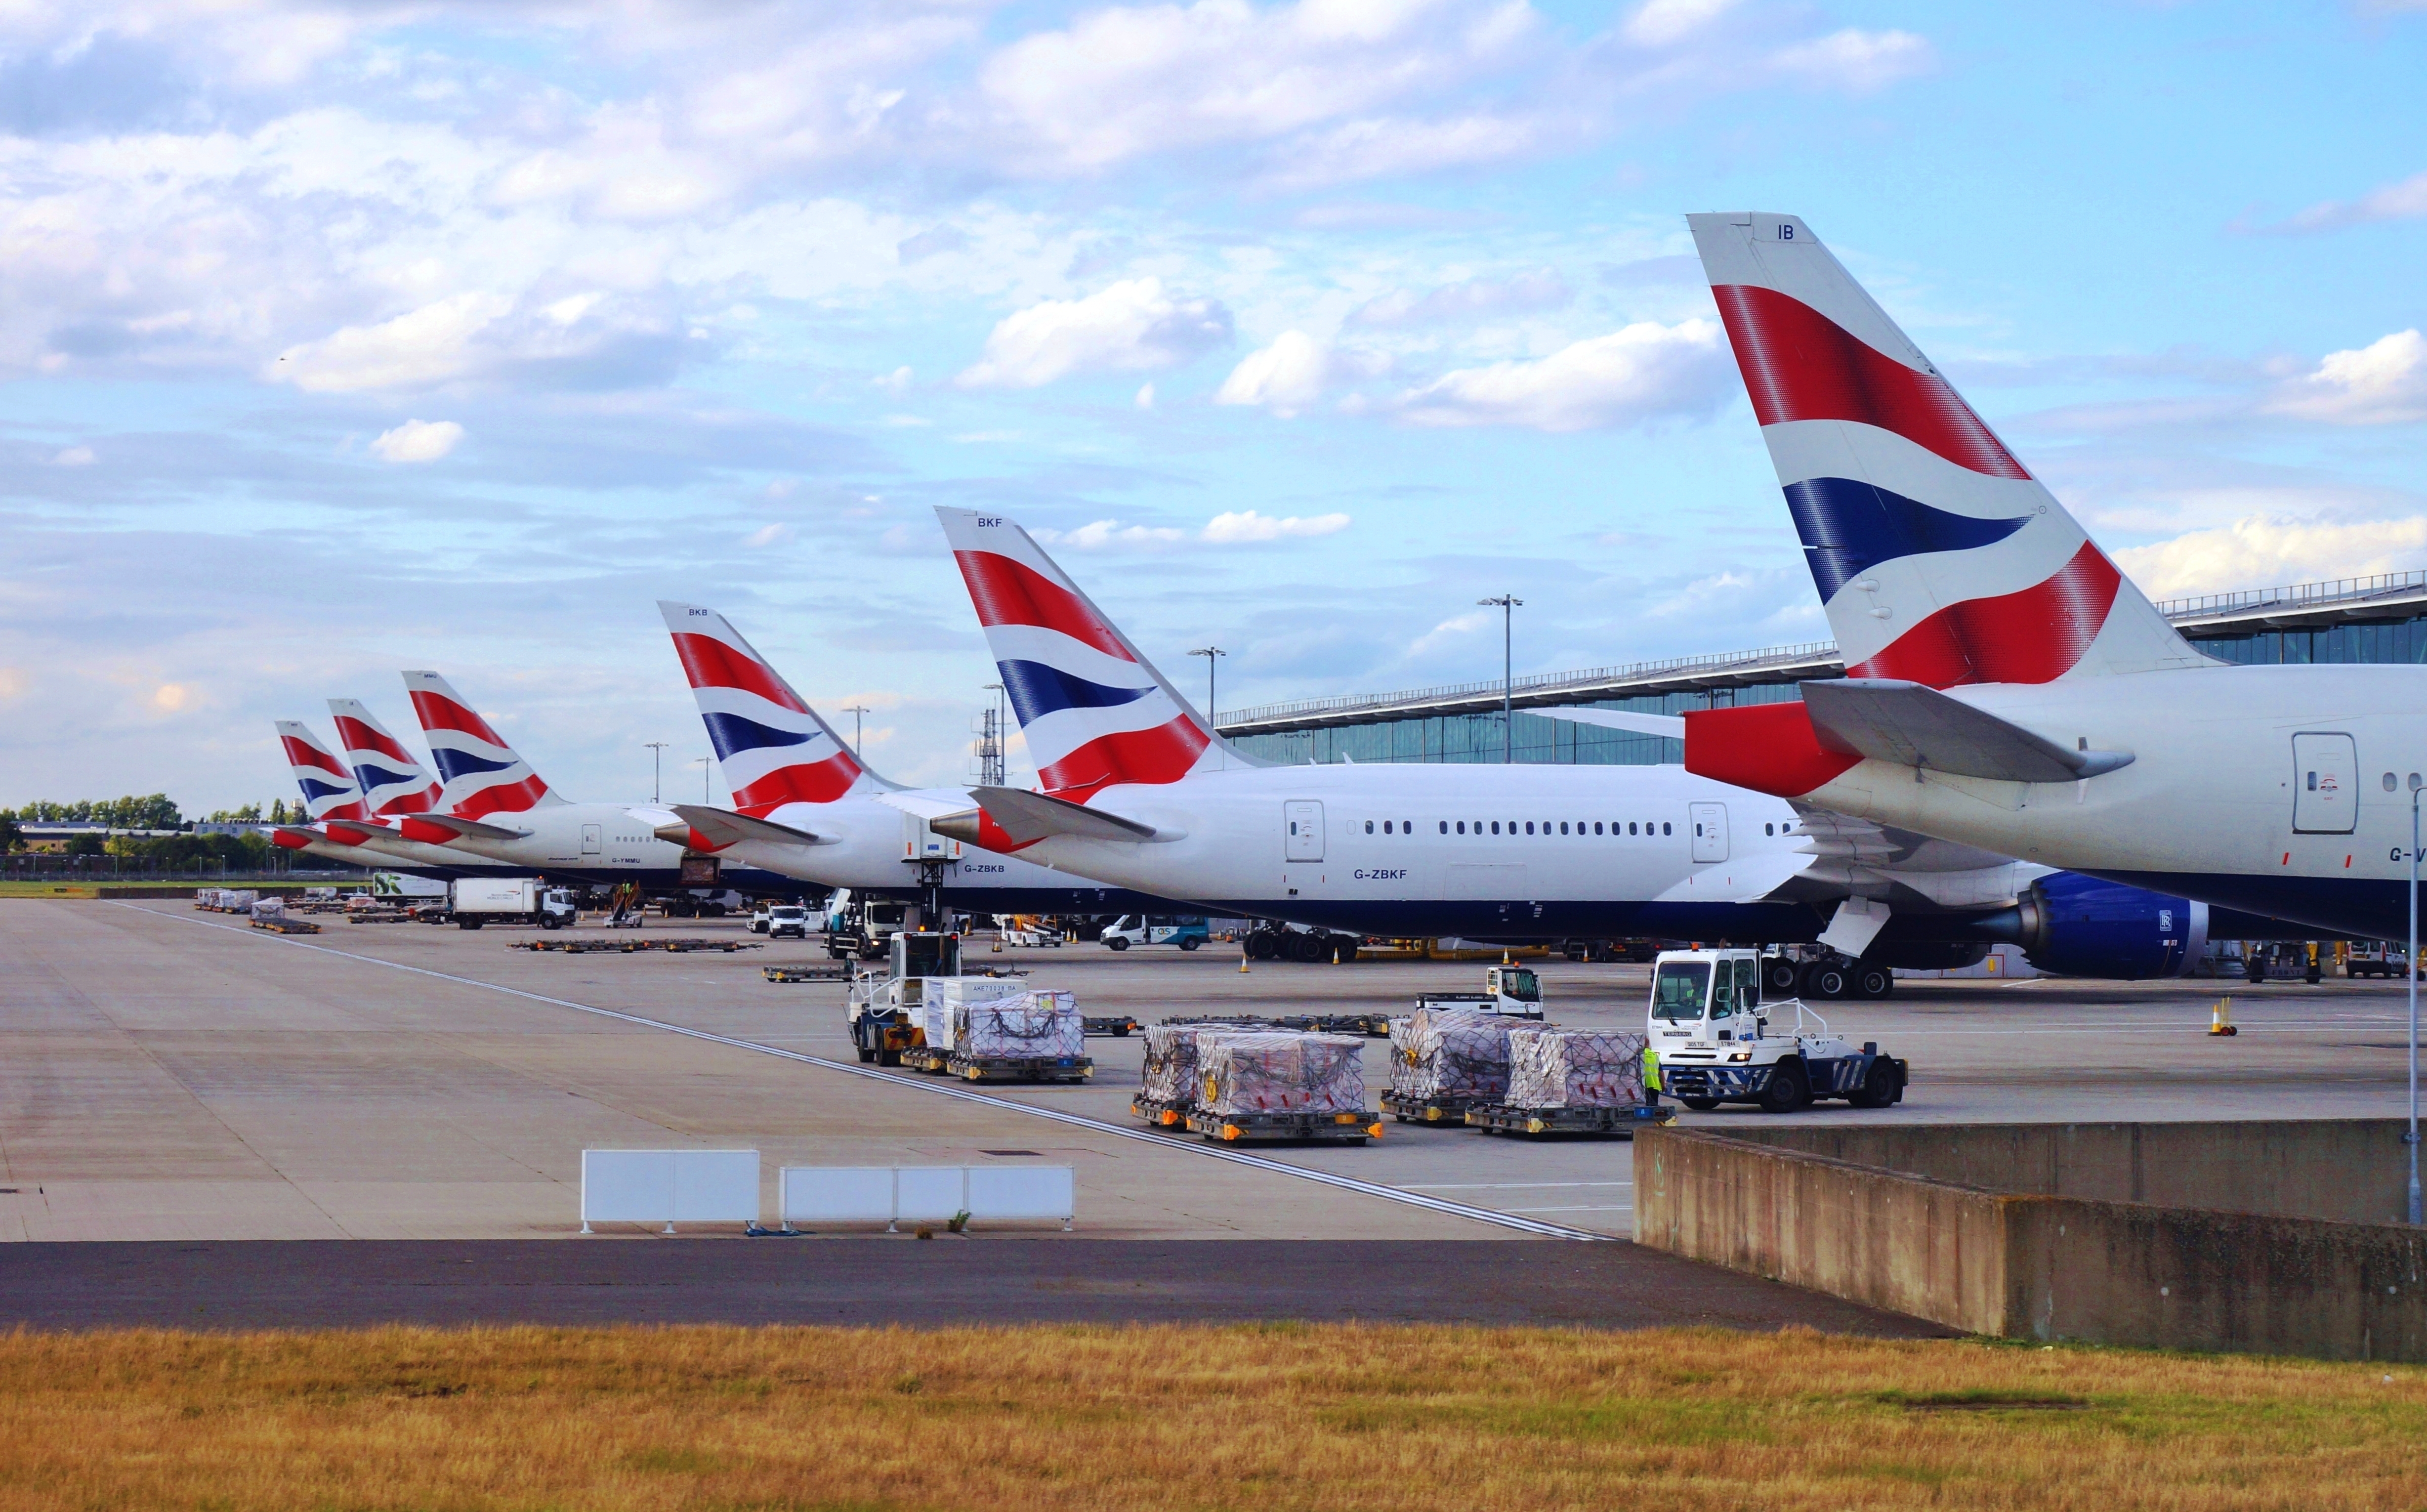 British Airways Boarding Groups & Process - Complete Guide [2019]